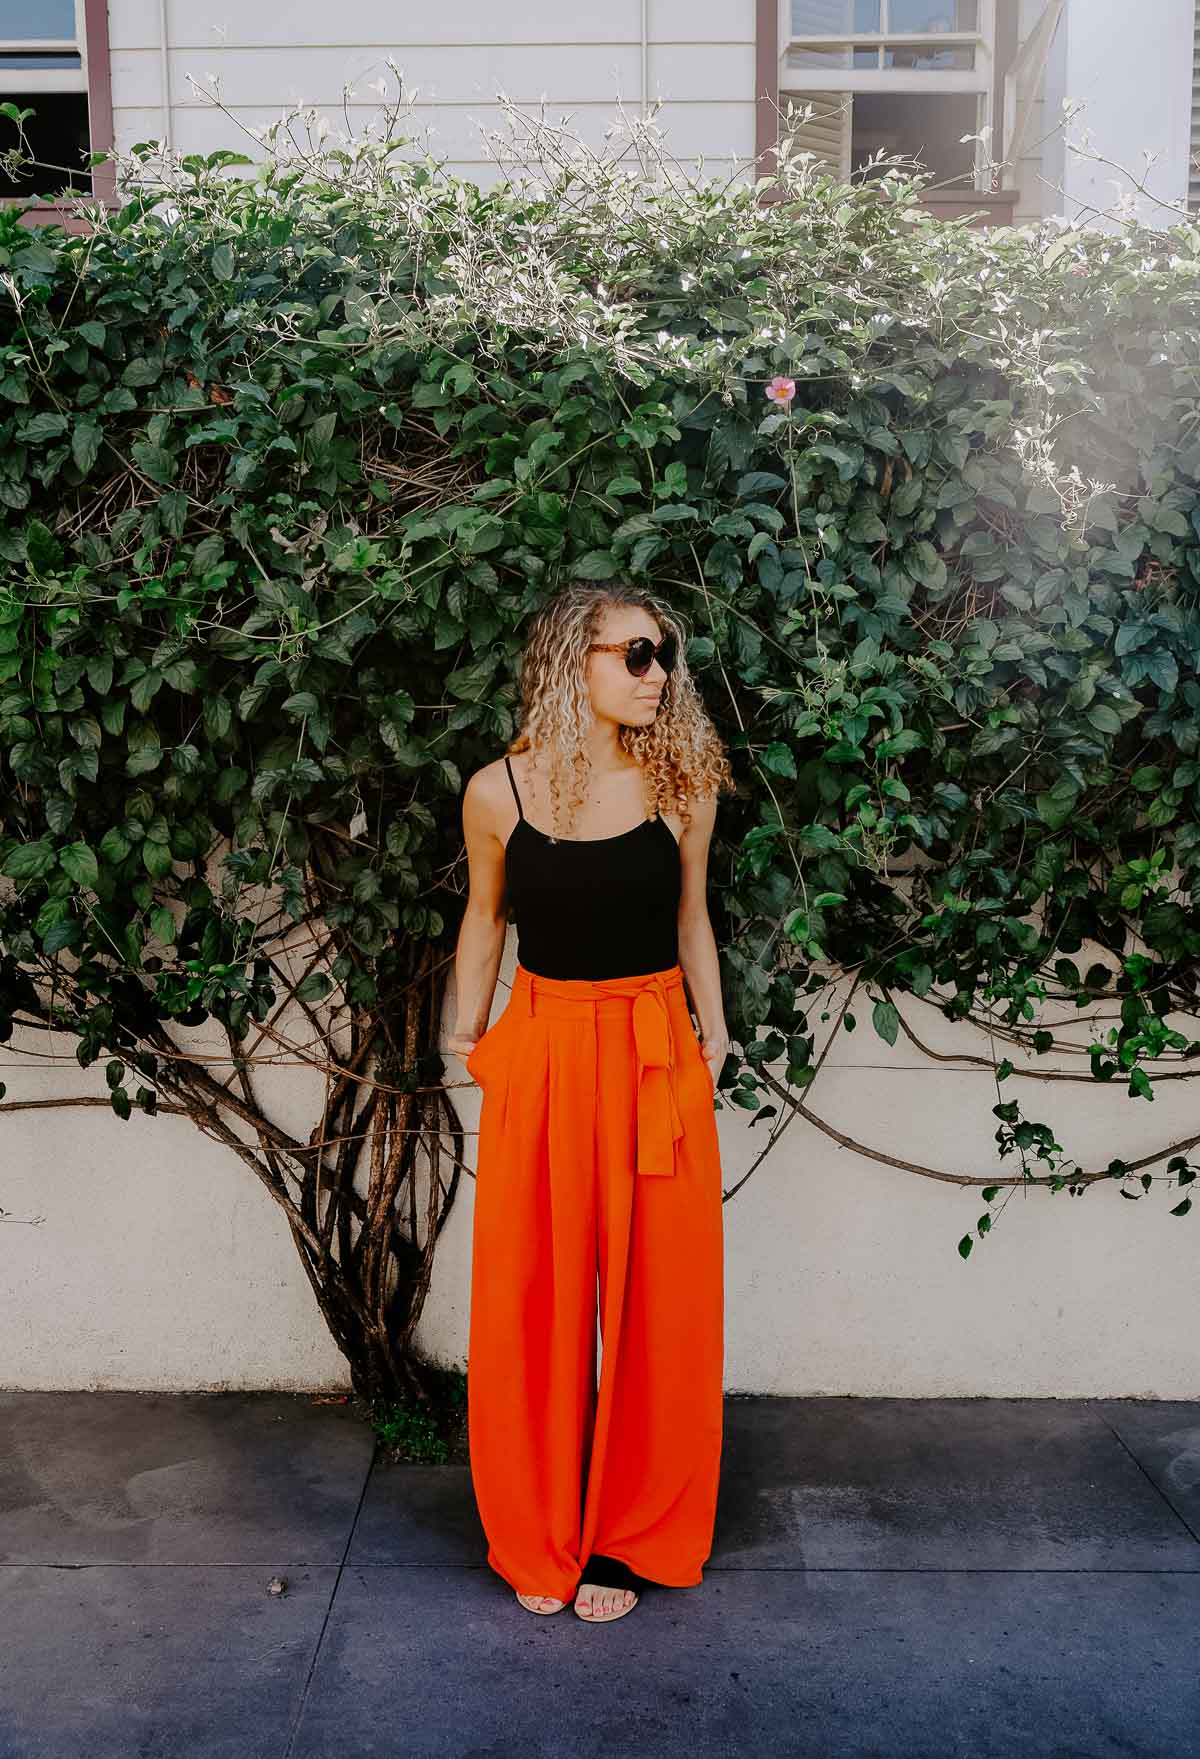 Planning a trip to LA and need to know what to wear? This post has the LA packing essentials that you need for a trip to Los Angeles! These palazzo pants and bodysuit would be perfect for summer!